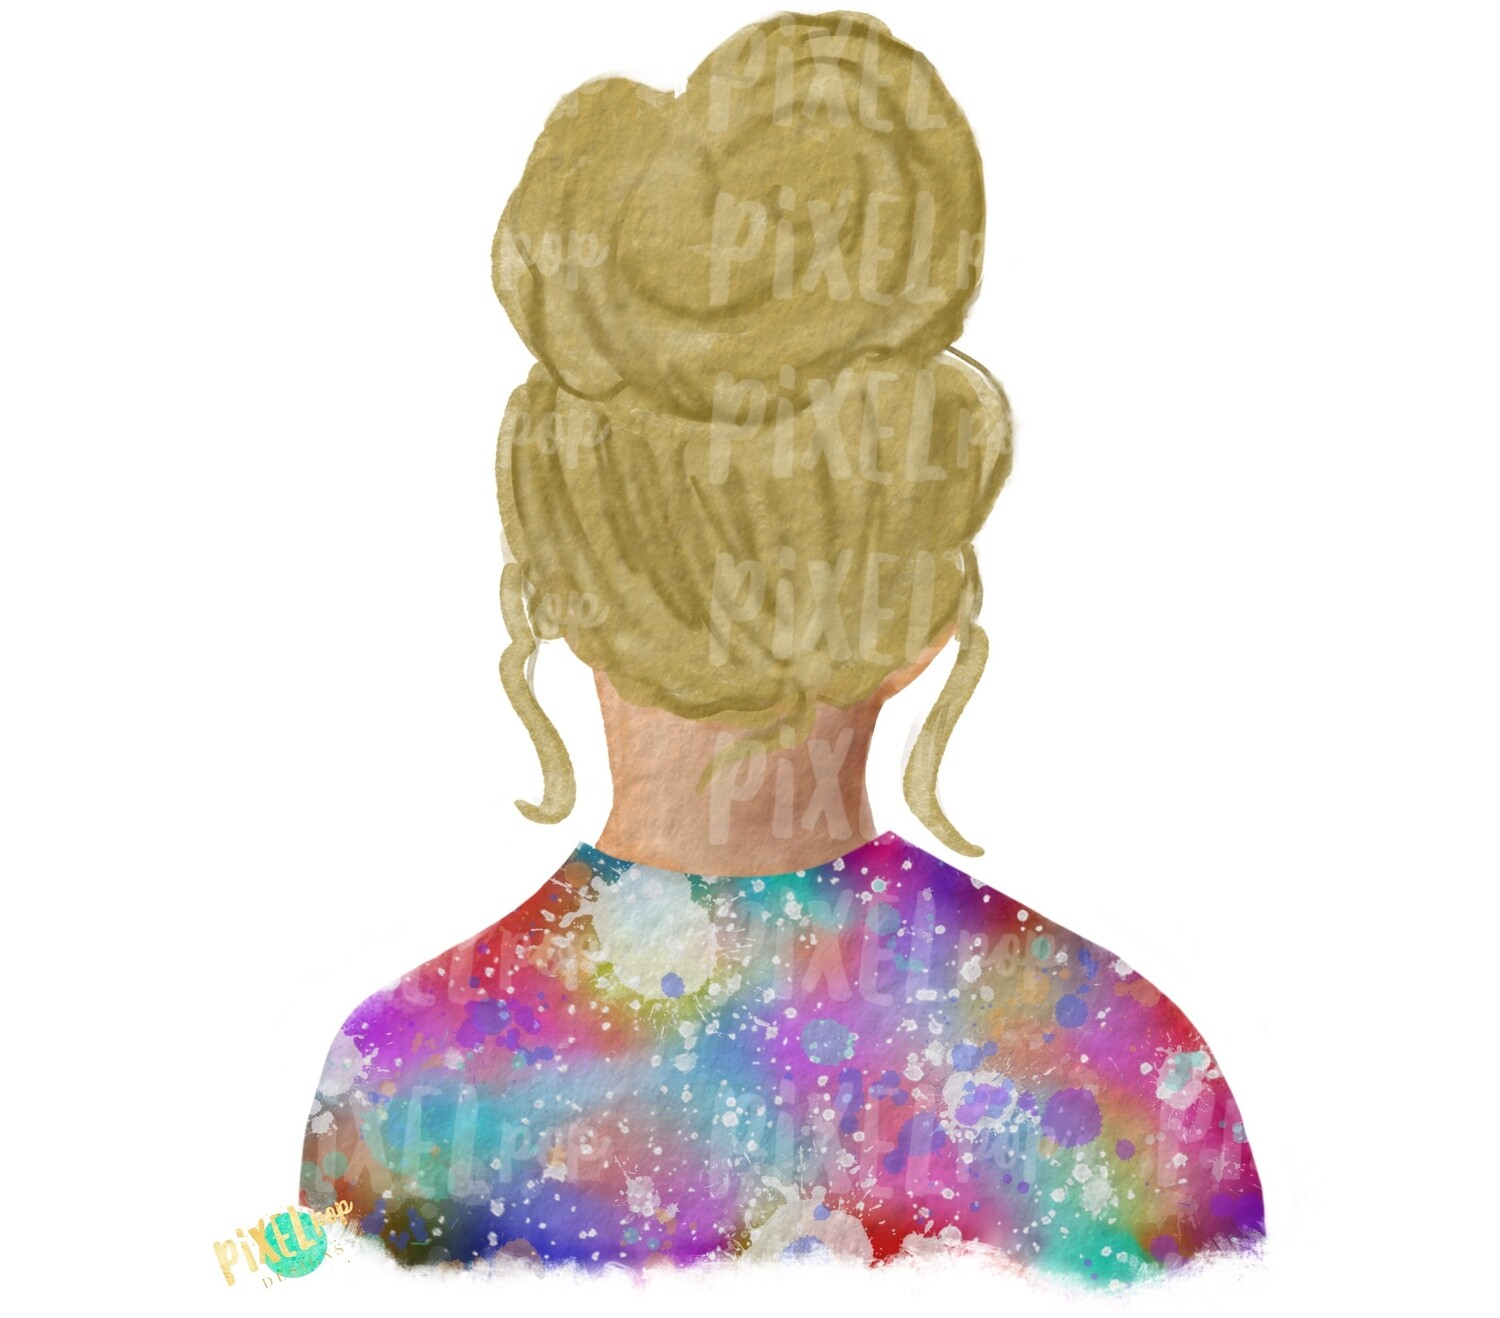 Bun Girl Blonde Tie Dye Shirt Sublimation PNG | Sublimation Design | Hippie Girl | Digital Download | Printable Art